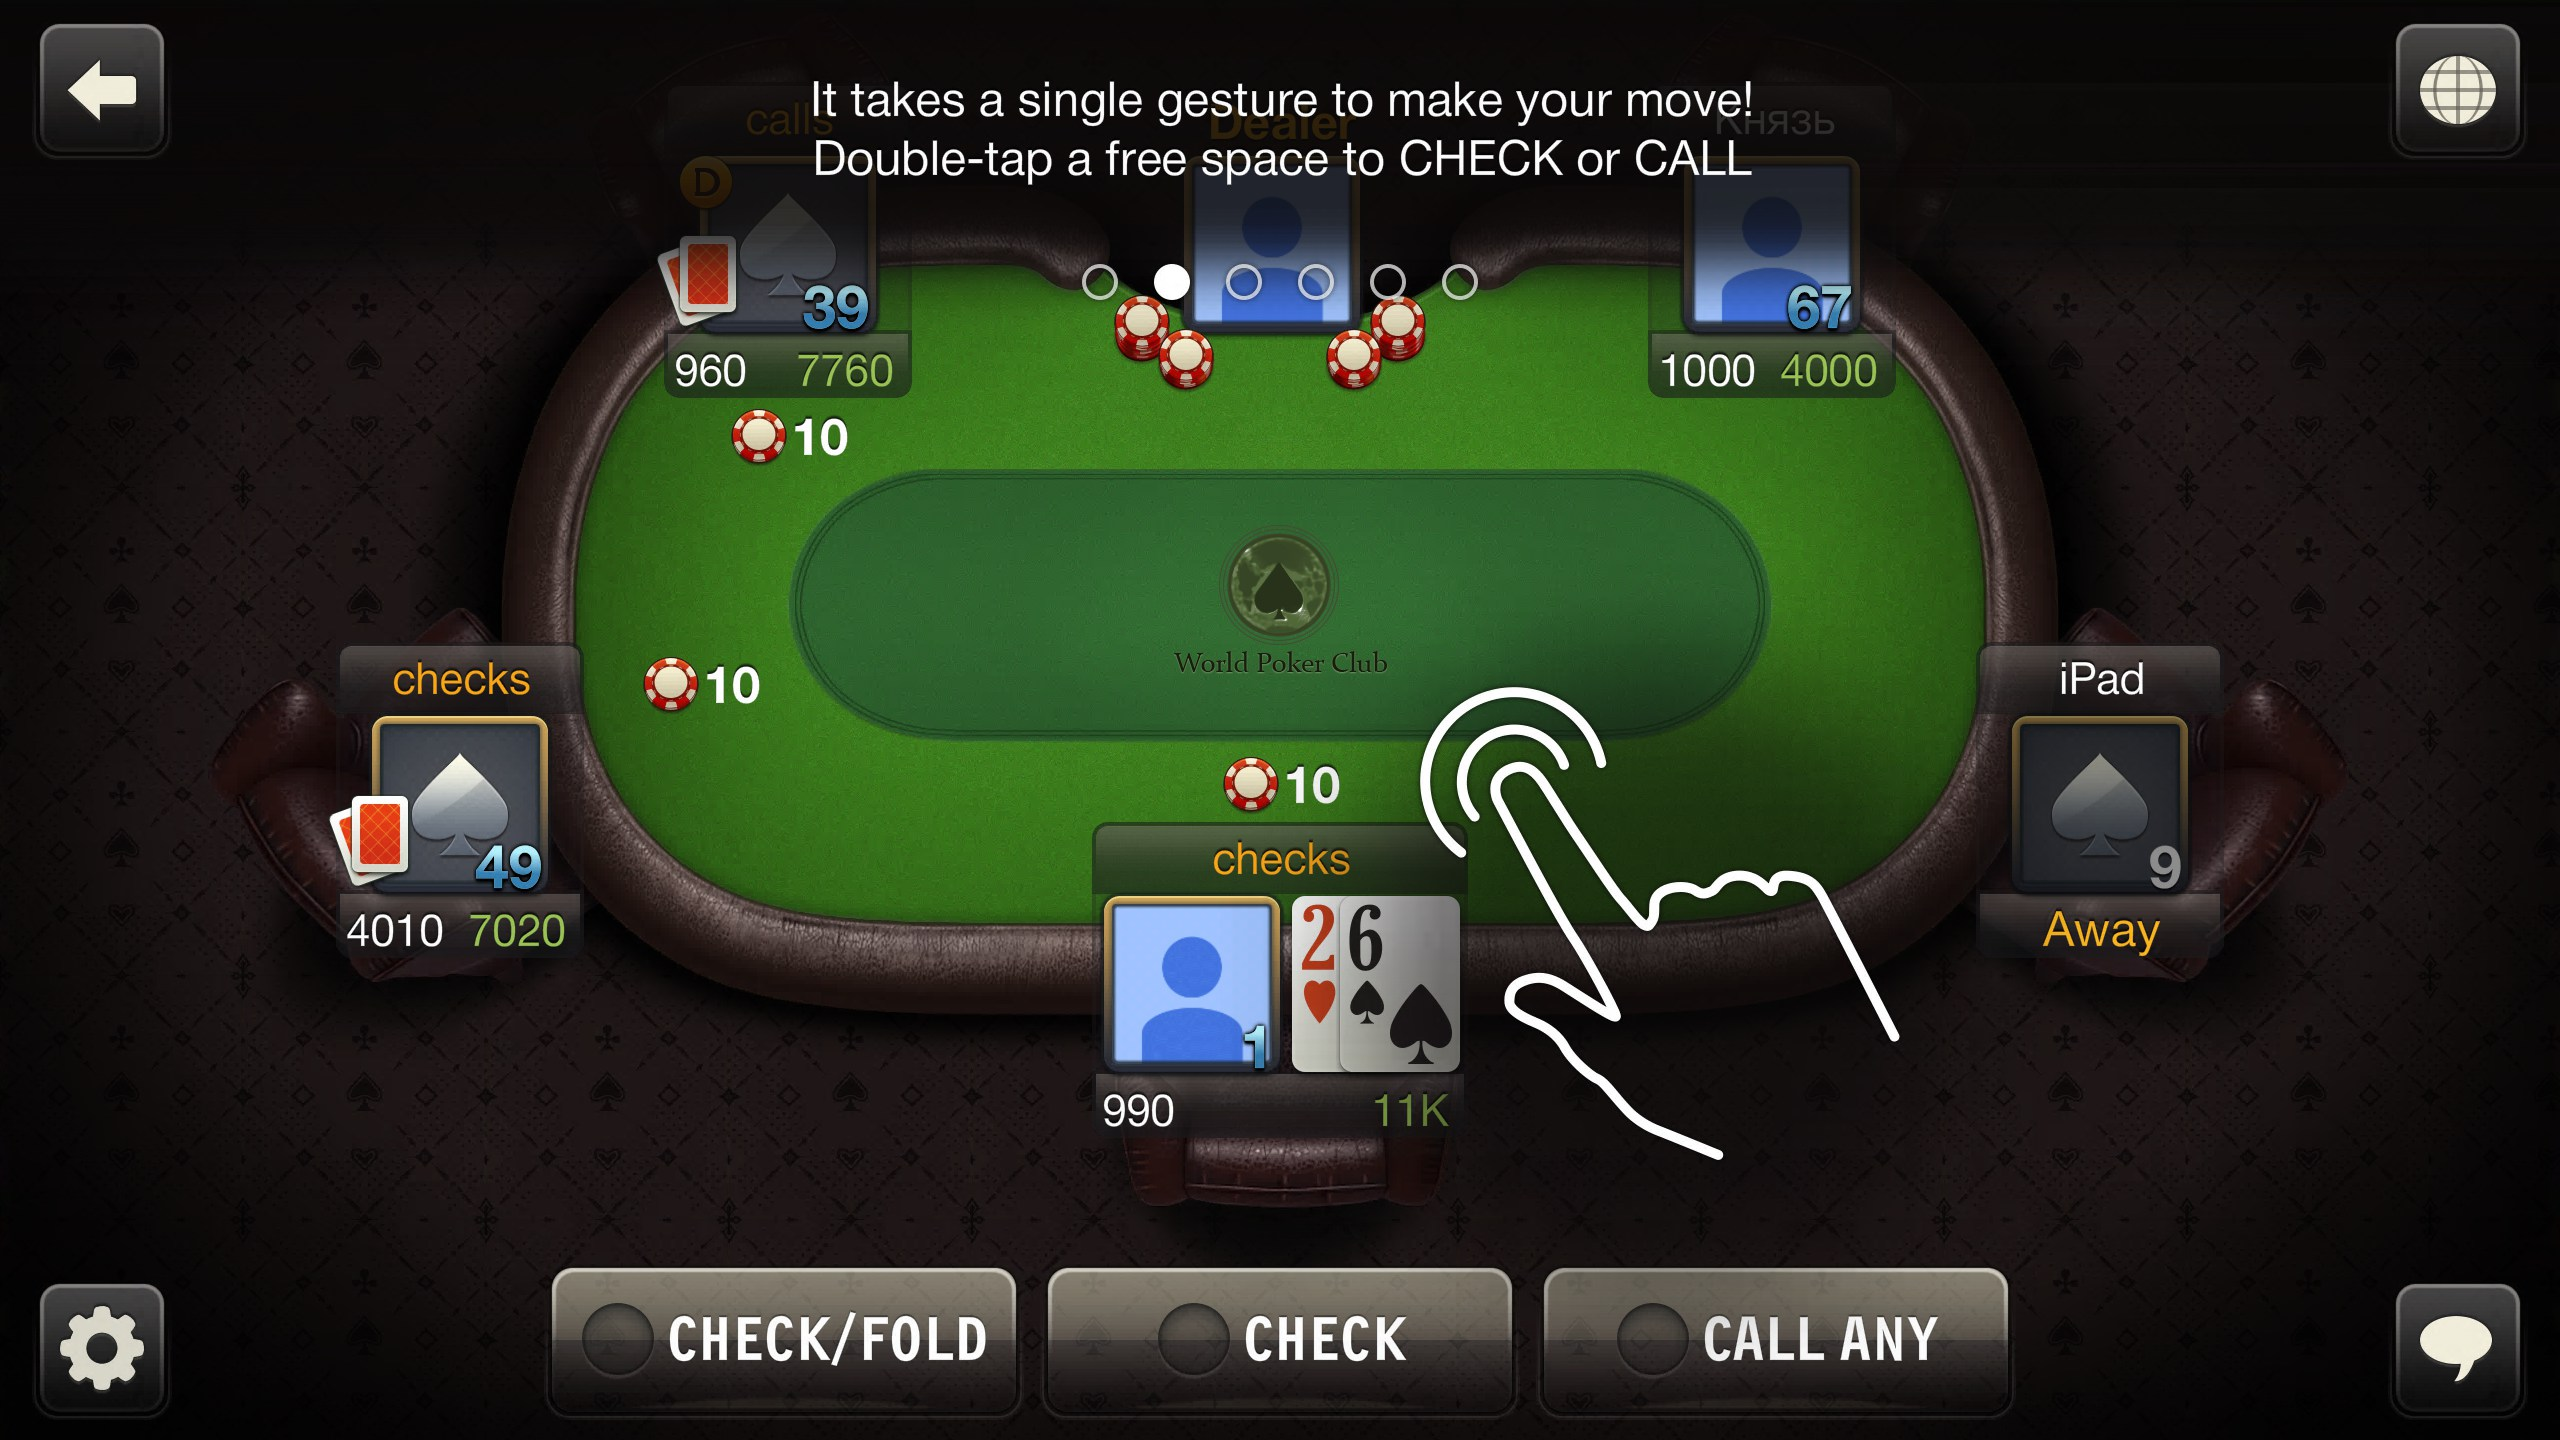 How to play moola bonanza